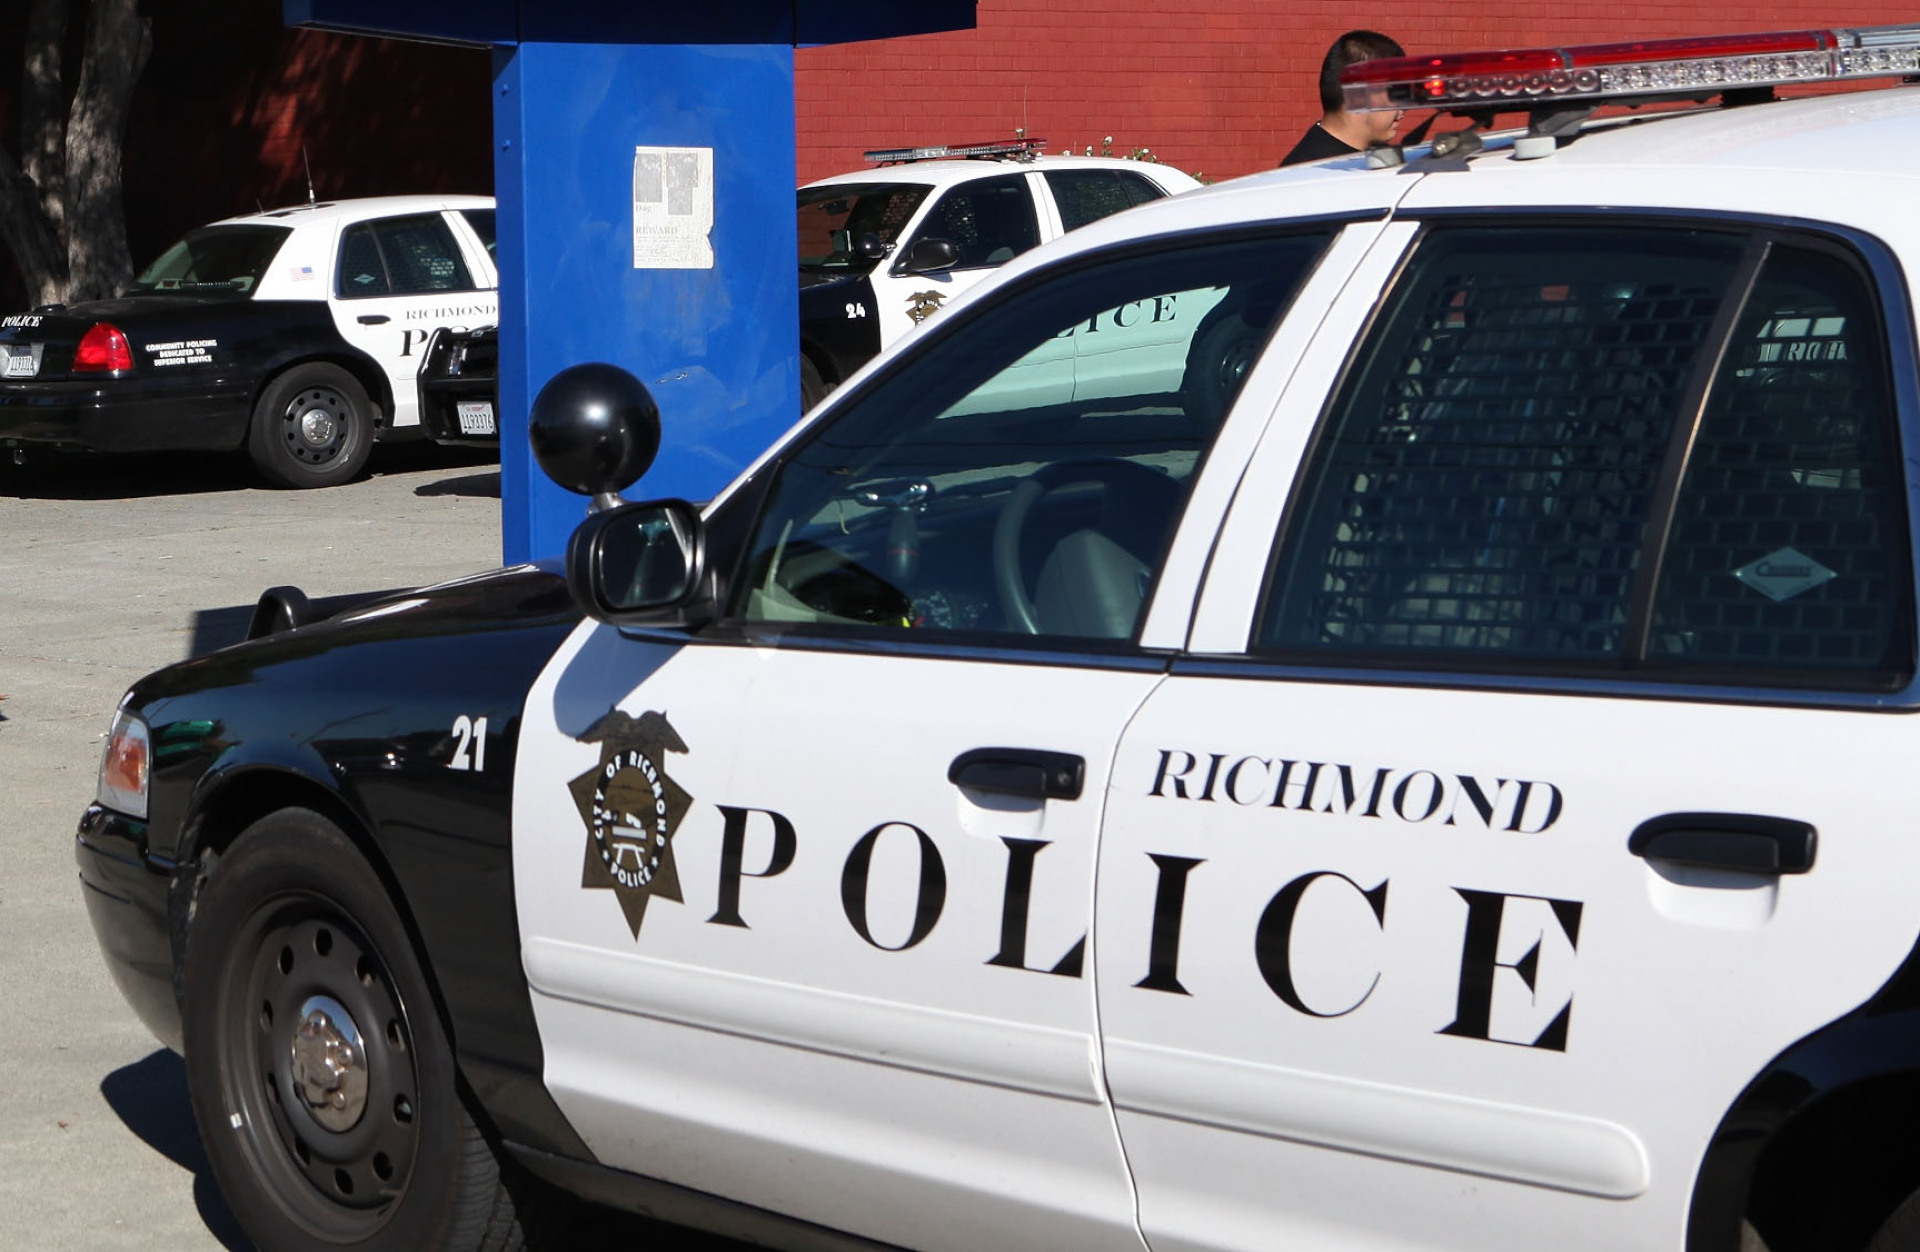 The Richmond Police Department is one of seven law enforcement agencies implicated in a sexual misconduct scandal involving a teenager.